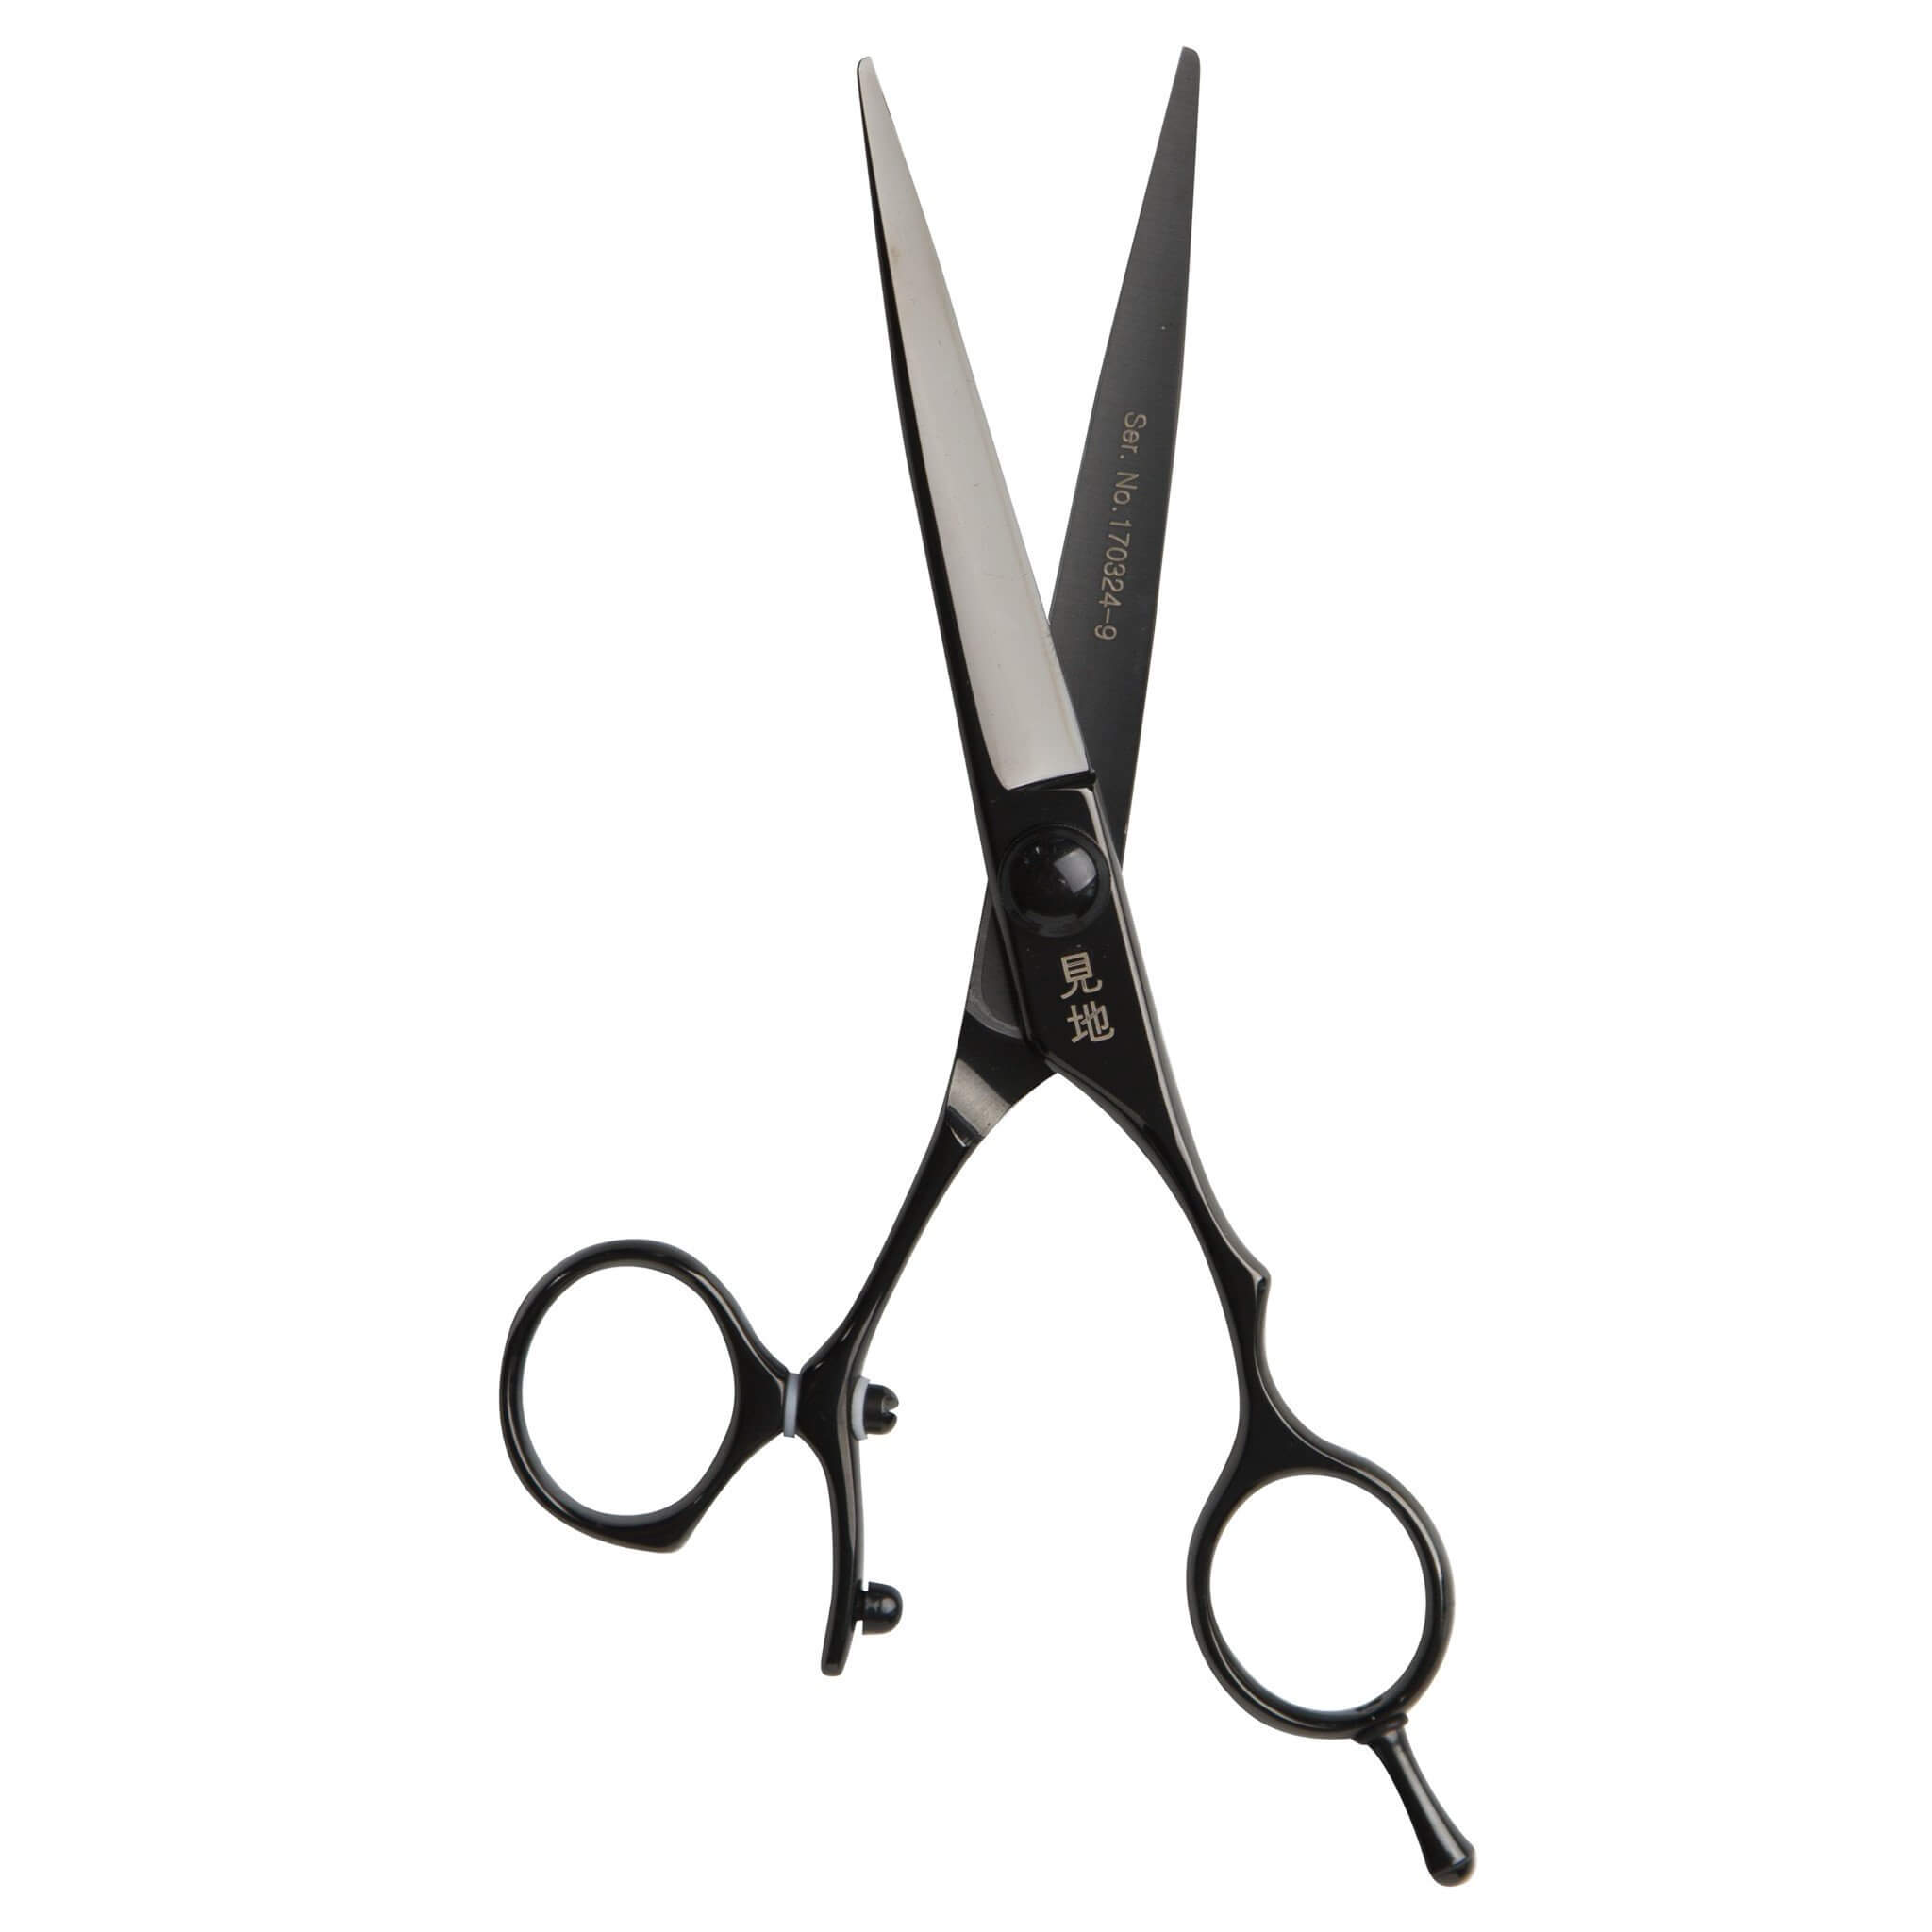 Kasiv Japanese Scissors with swivel handle for the ultimate 360 movement